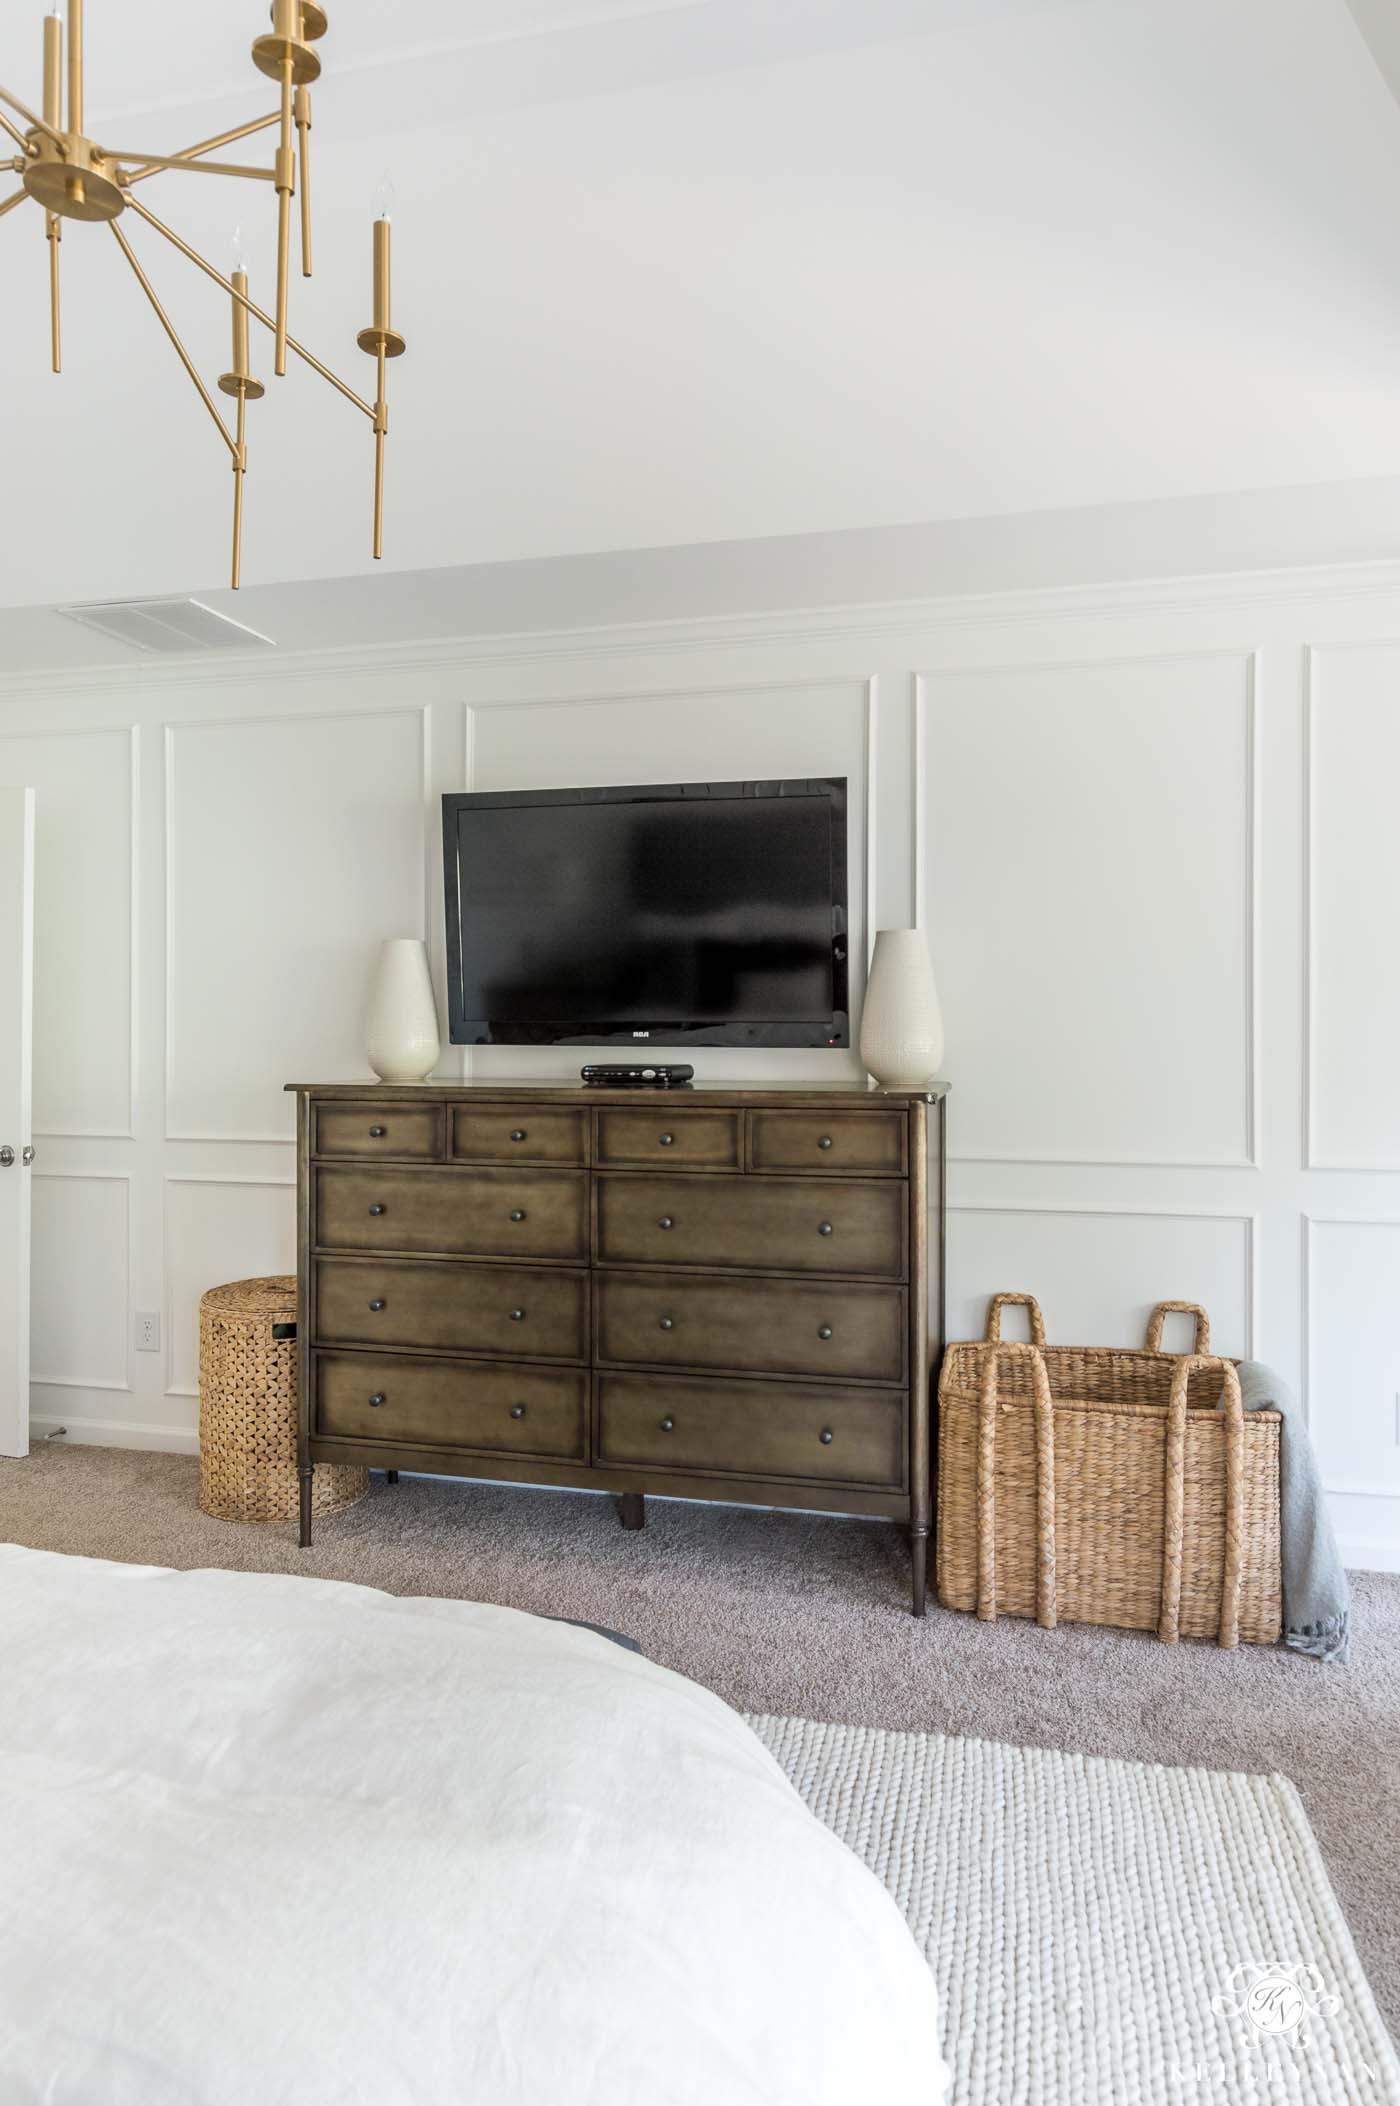 How to mix and match bedroom furniture with a metal bedroom dresser